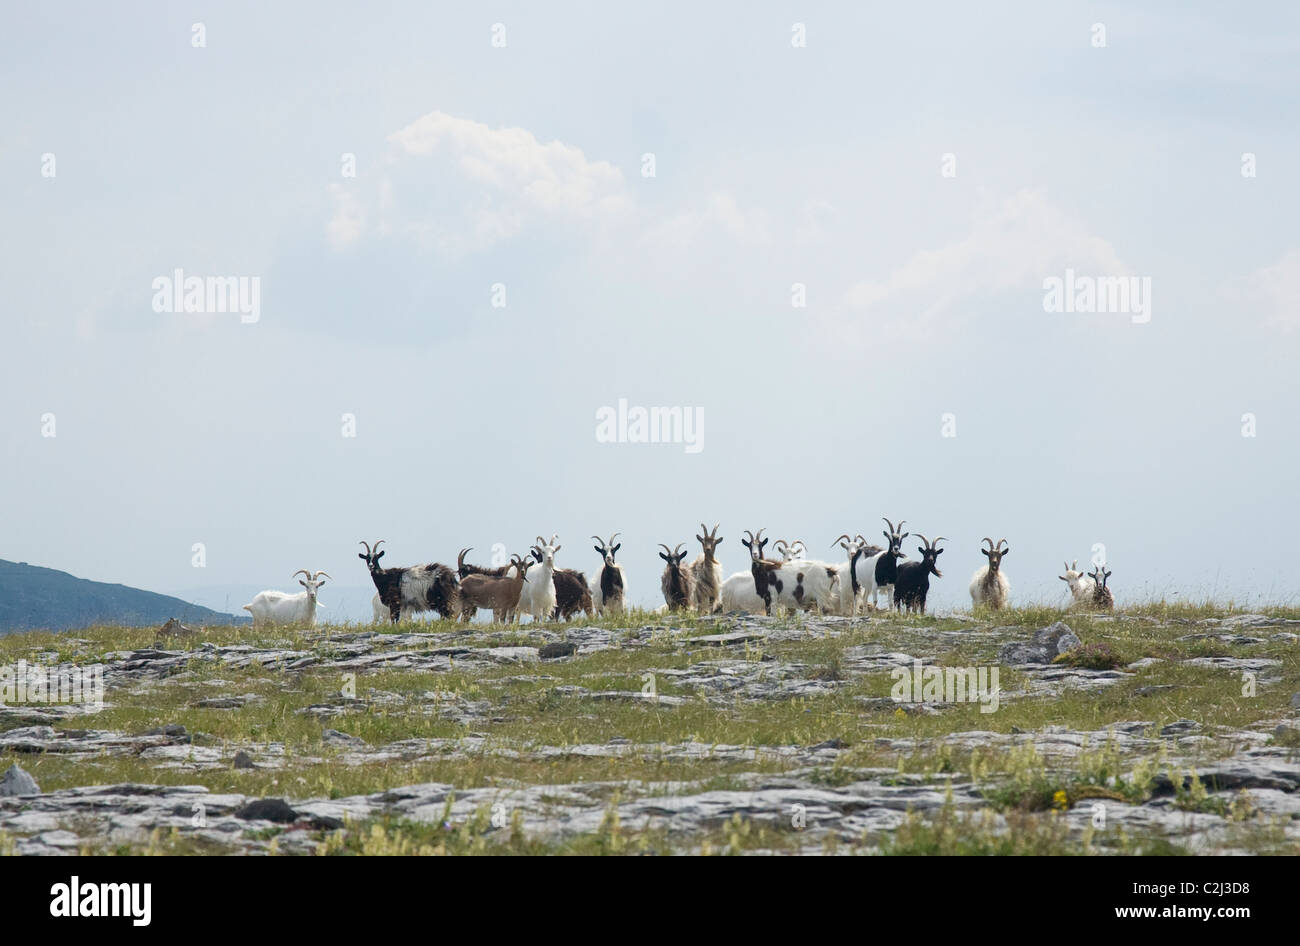 Herd of feral goats, Turlough Hill, The Burren, County Clare, Ireland. - Stock Image